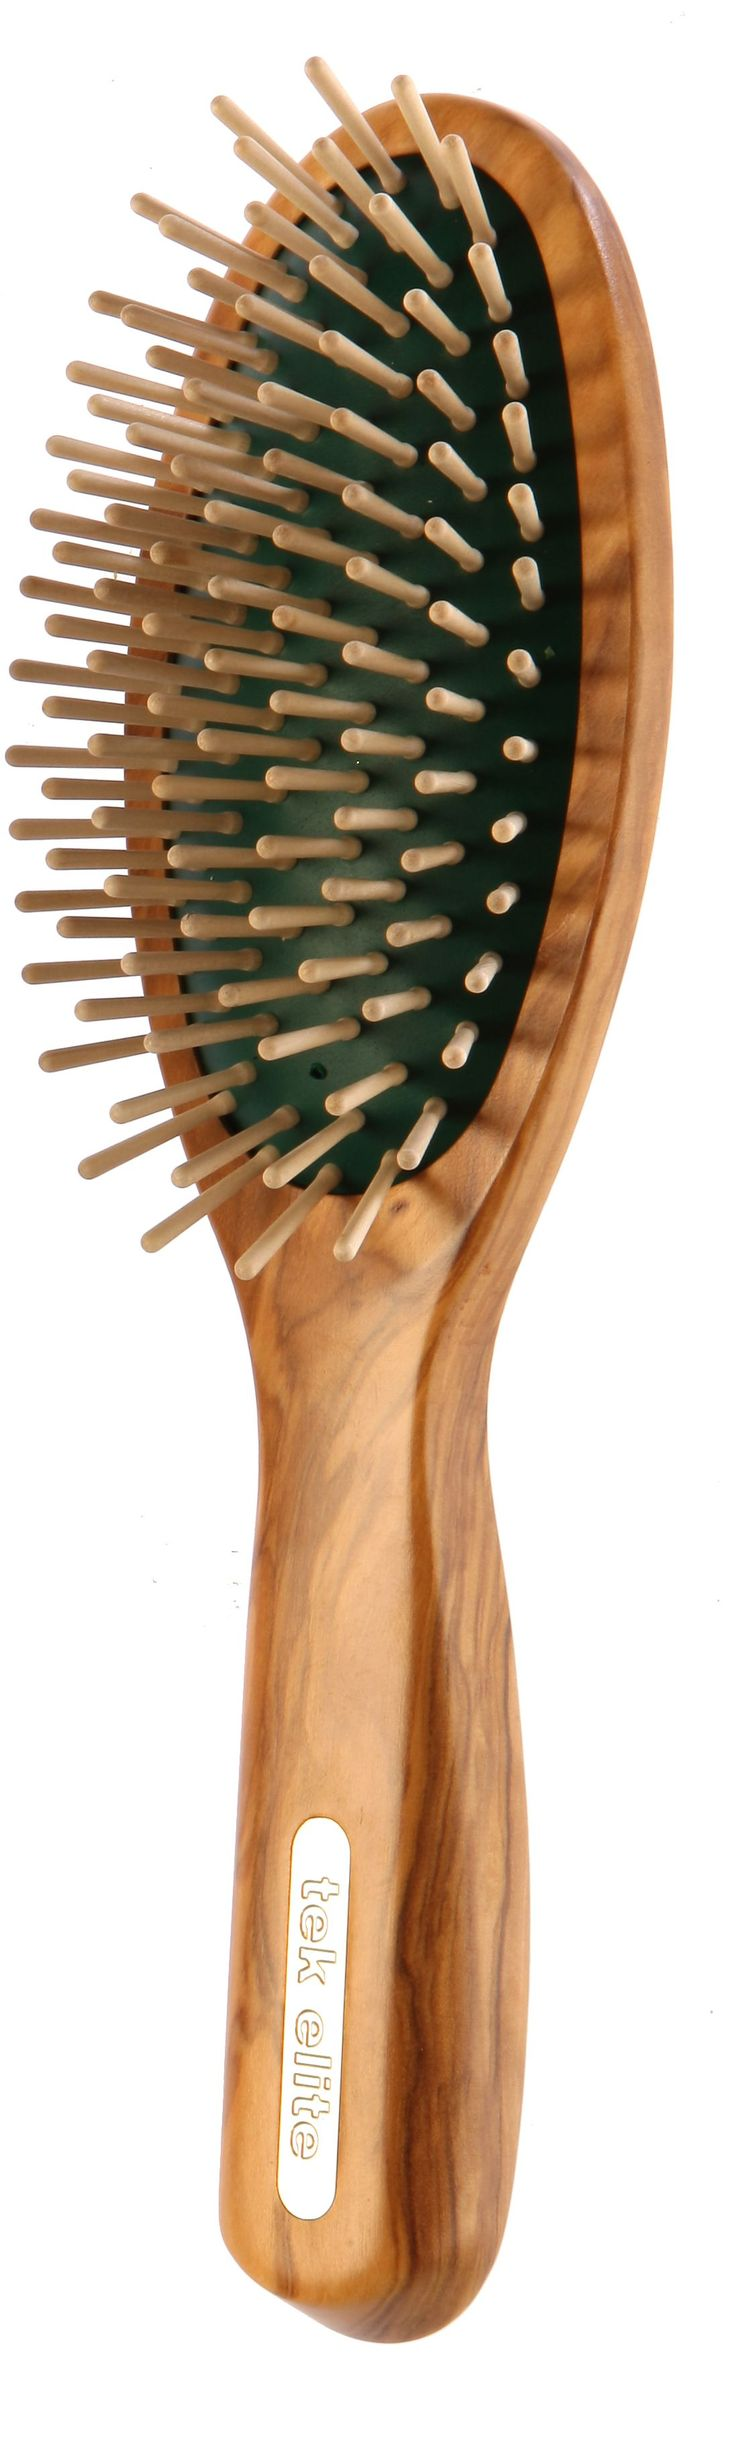 tek | Hair brush made in Italy using Forest Stewardship Council certificated wooden handle and pins.| Nerida x